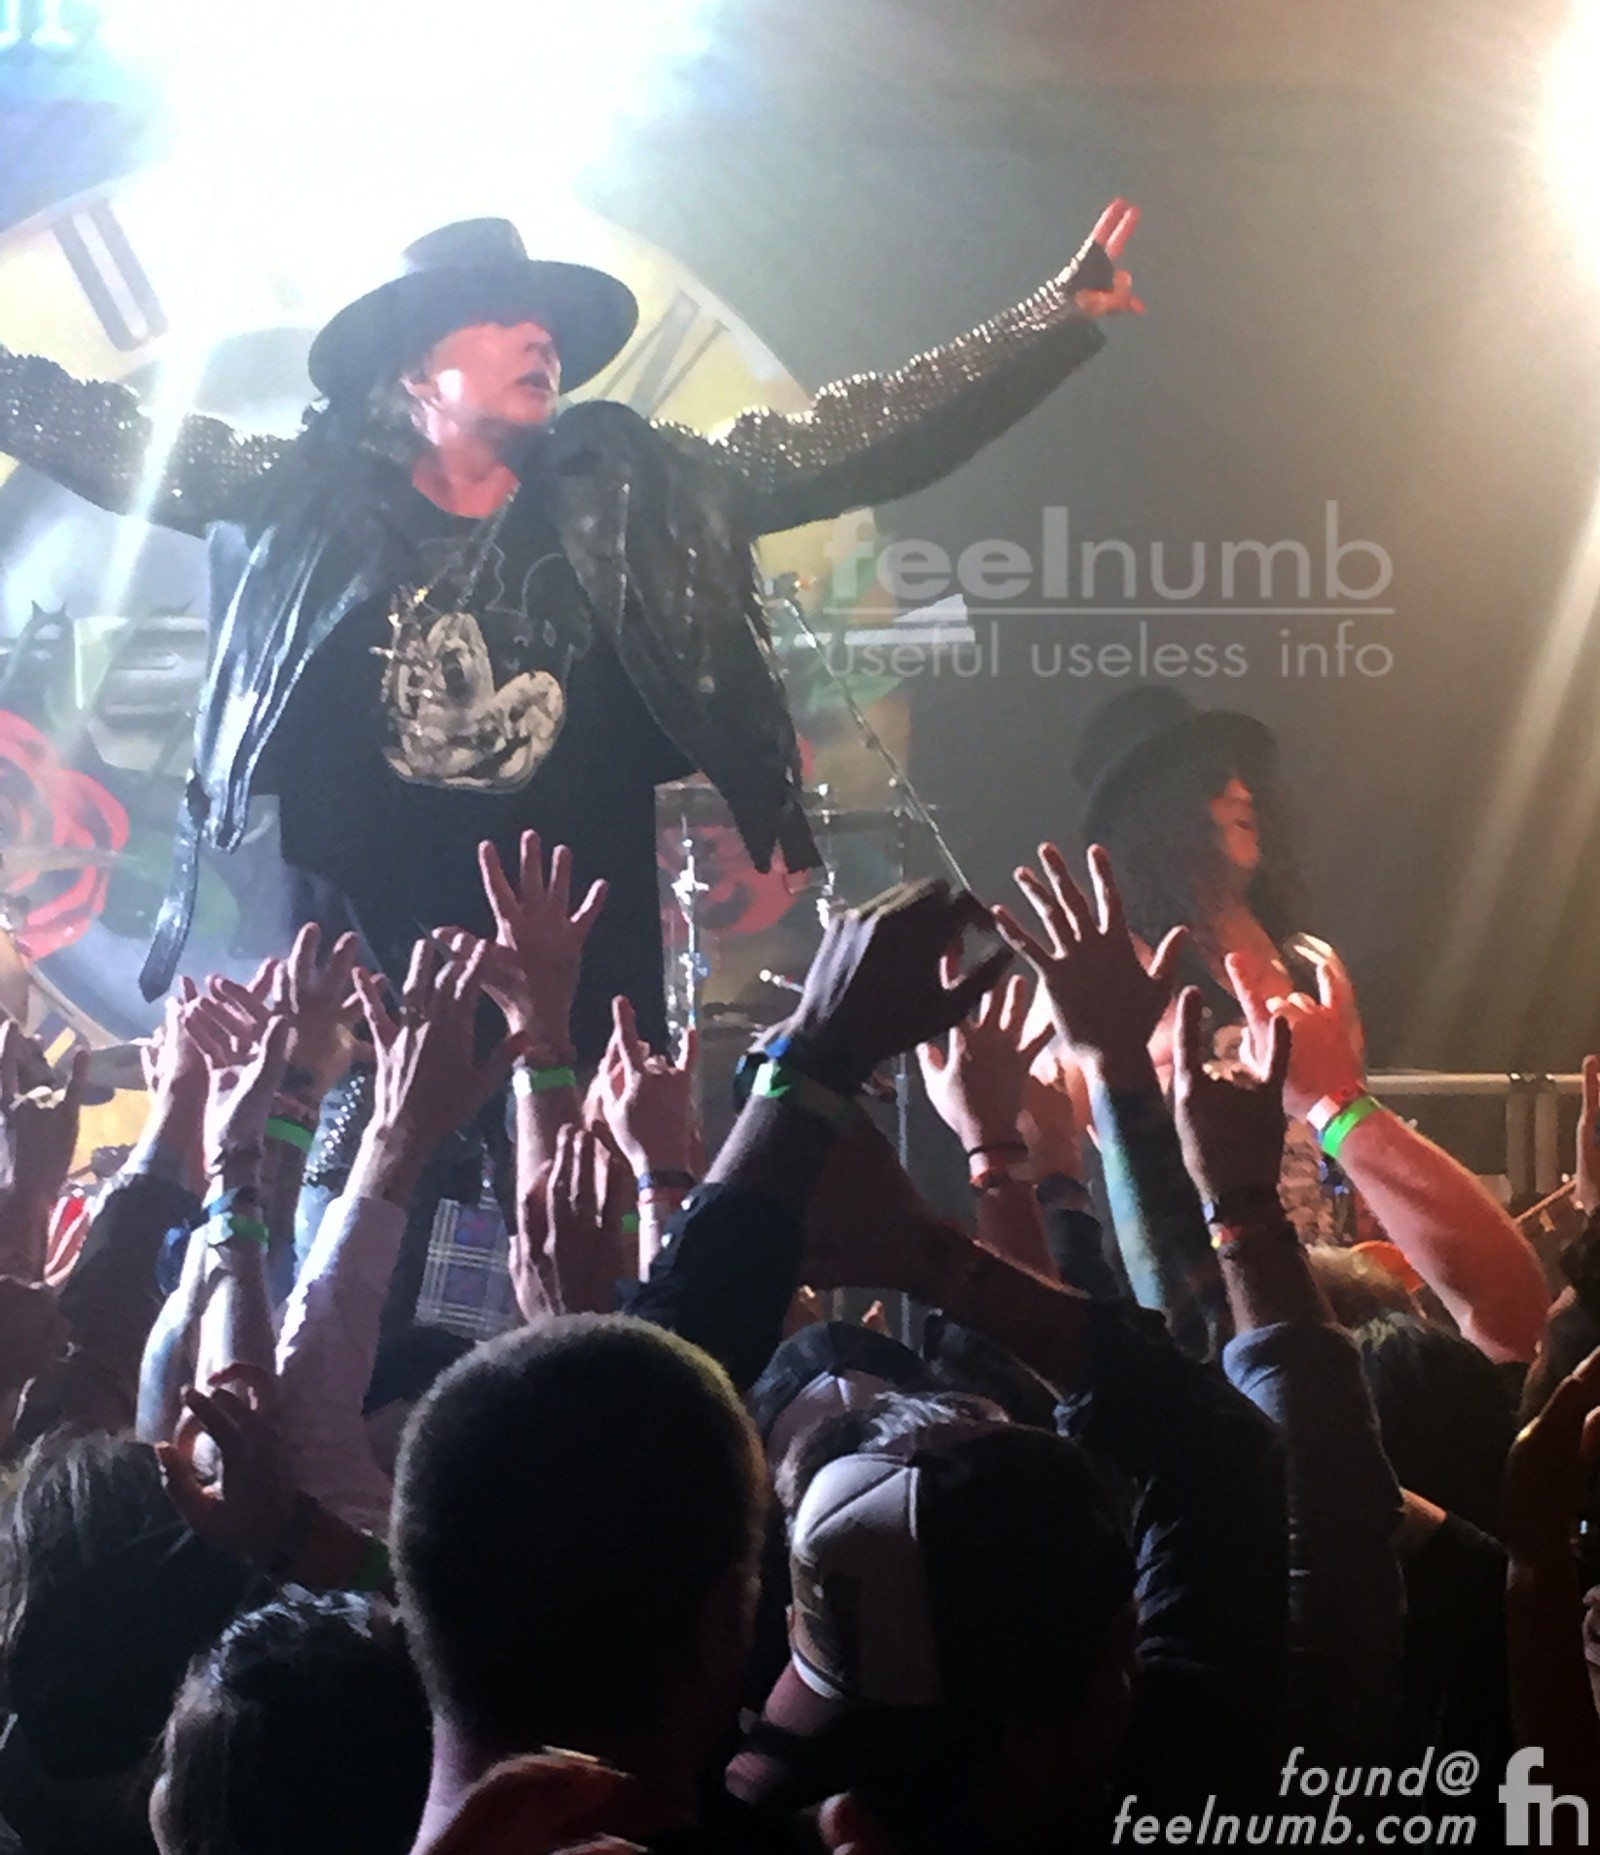 Axl Rose Slash Guns N' Roses GNR First Show 2016 The Troubadour Los Angeles, CA feelnumb.com